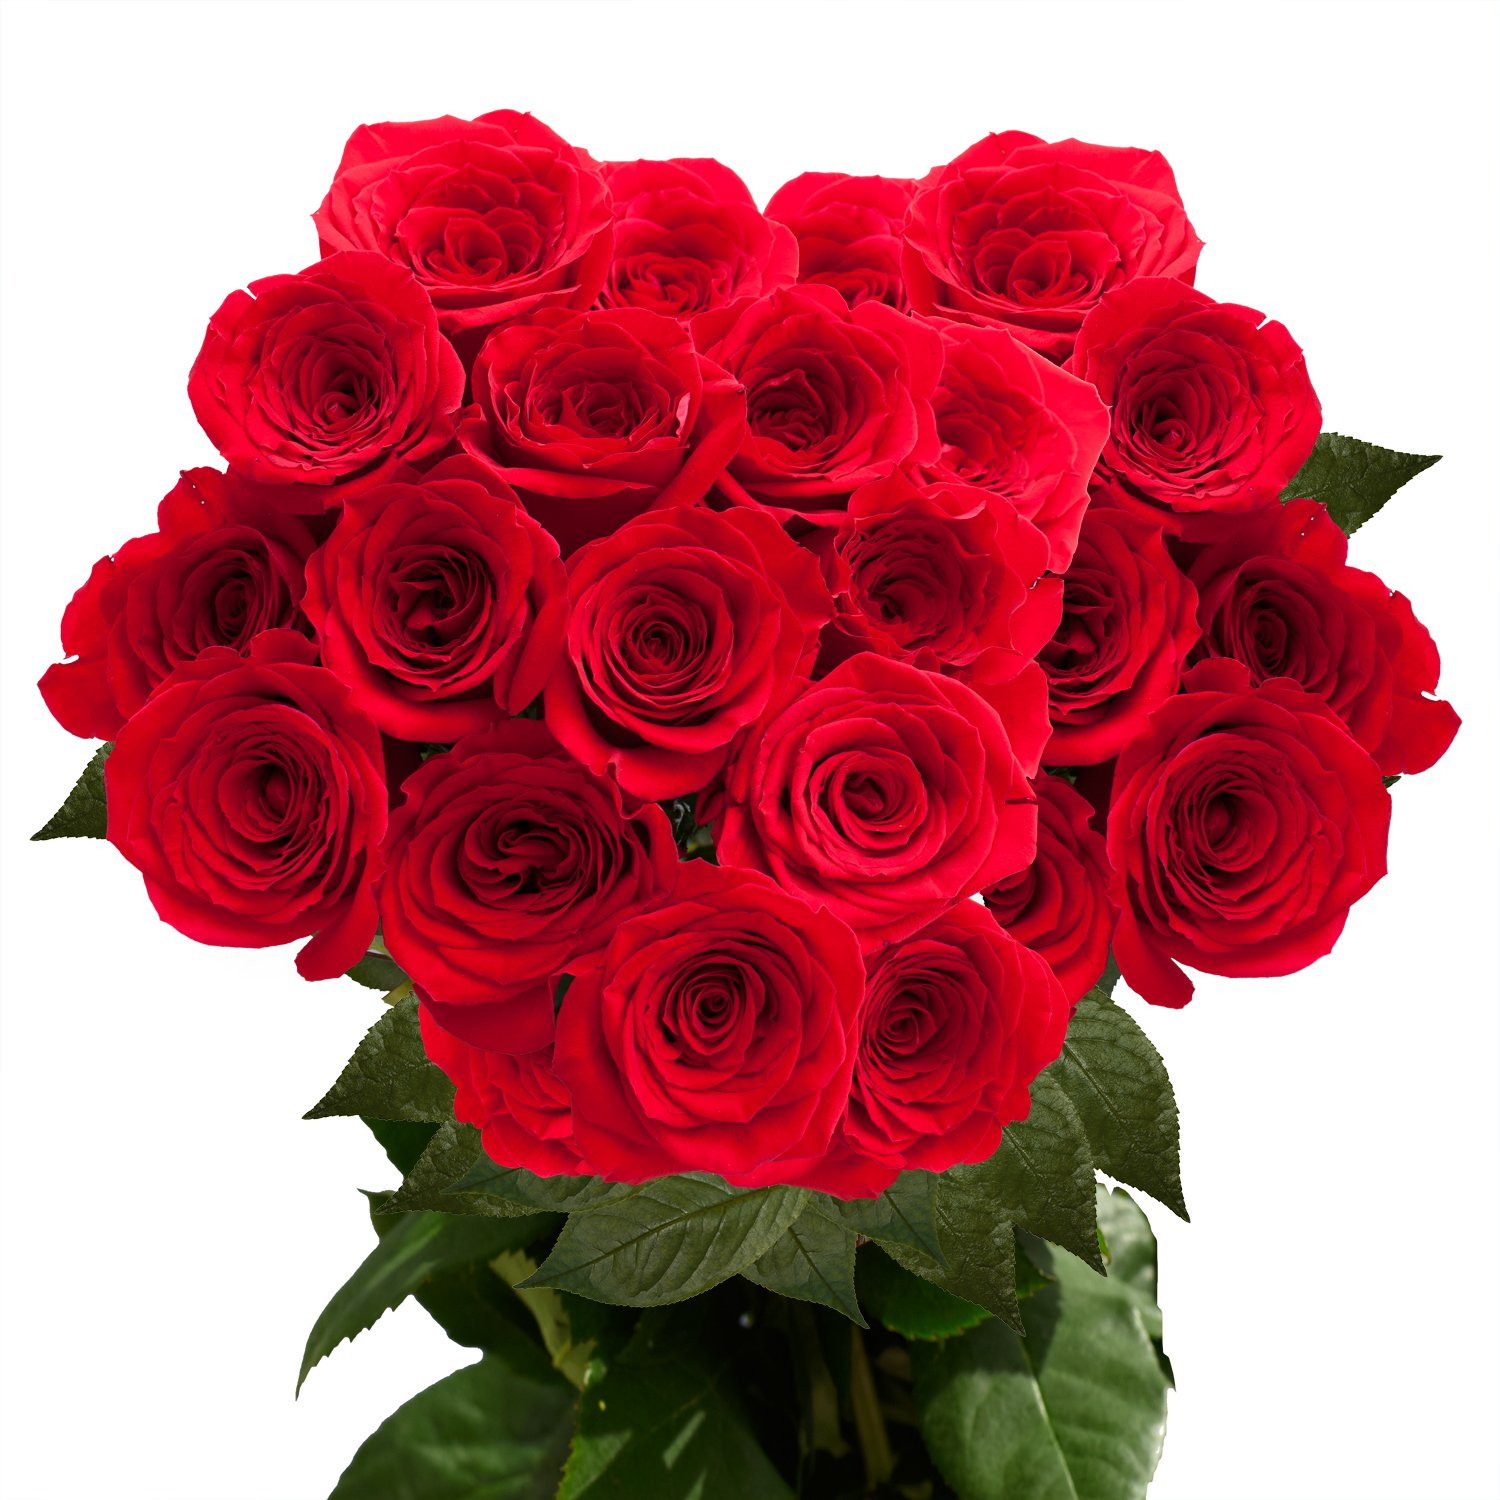 GlobalRose 2 Dozen Red Roses- Fresh Cut Flowers- Guranteed Delivery by GlobalRose (Image #1)